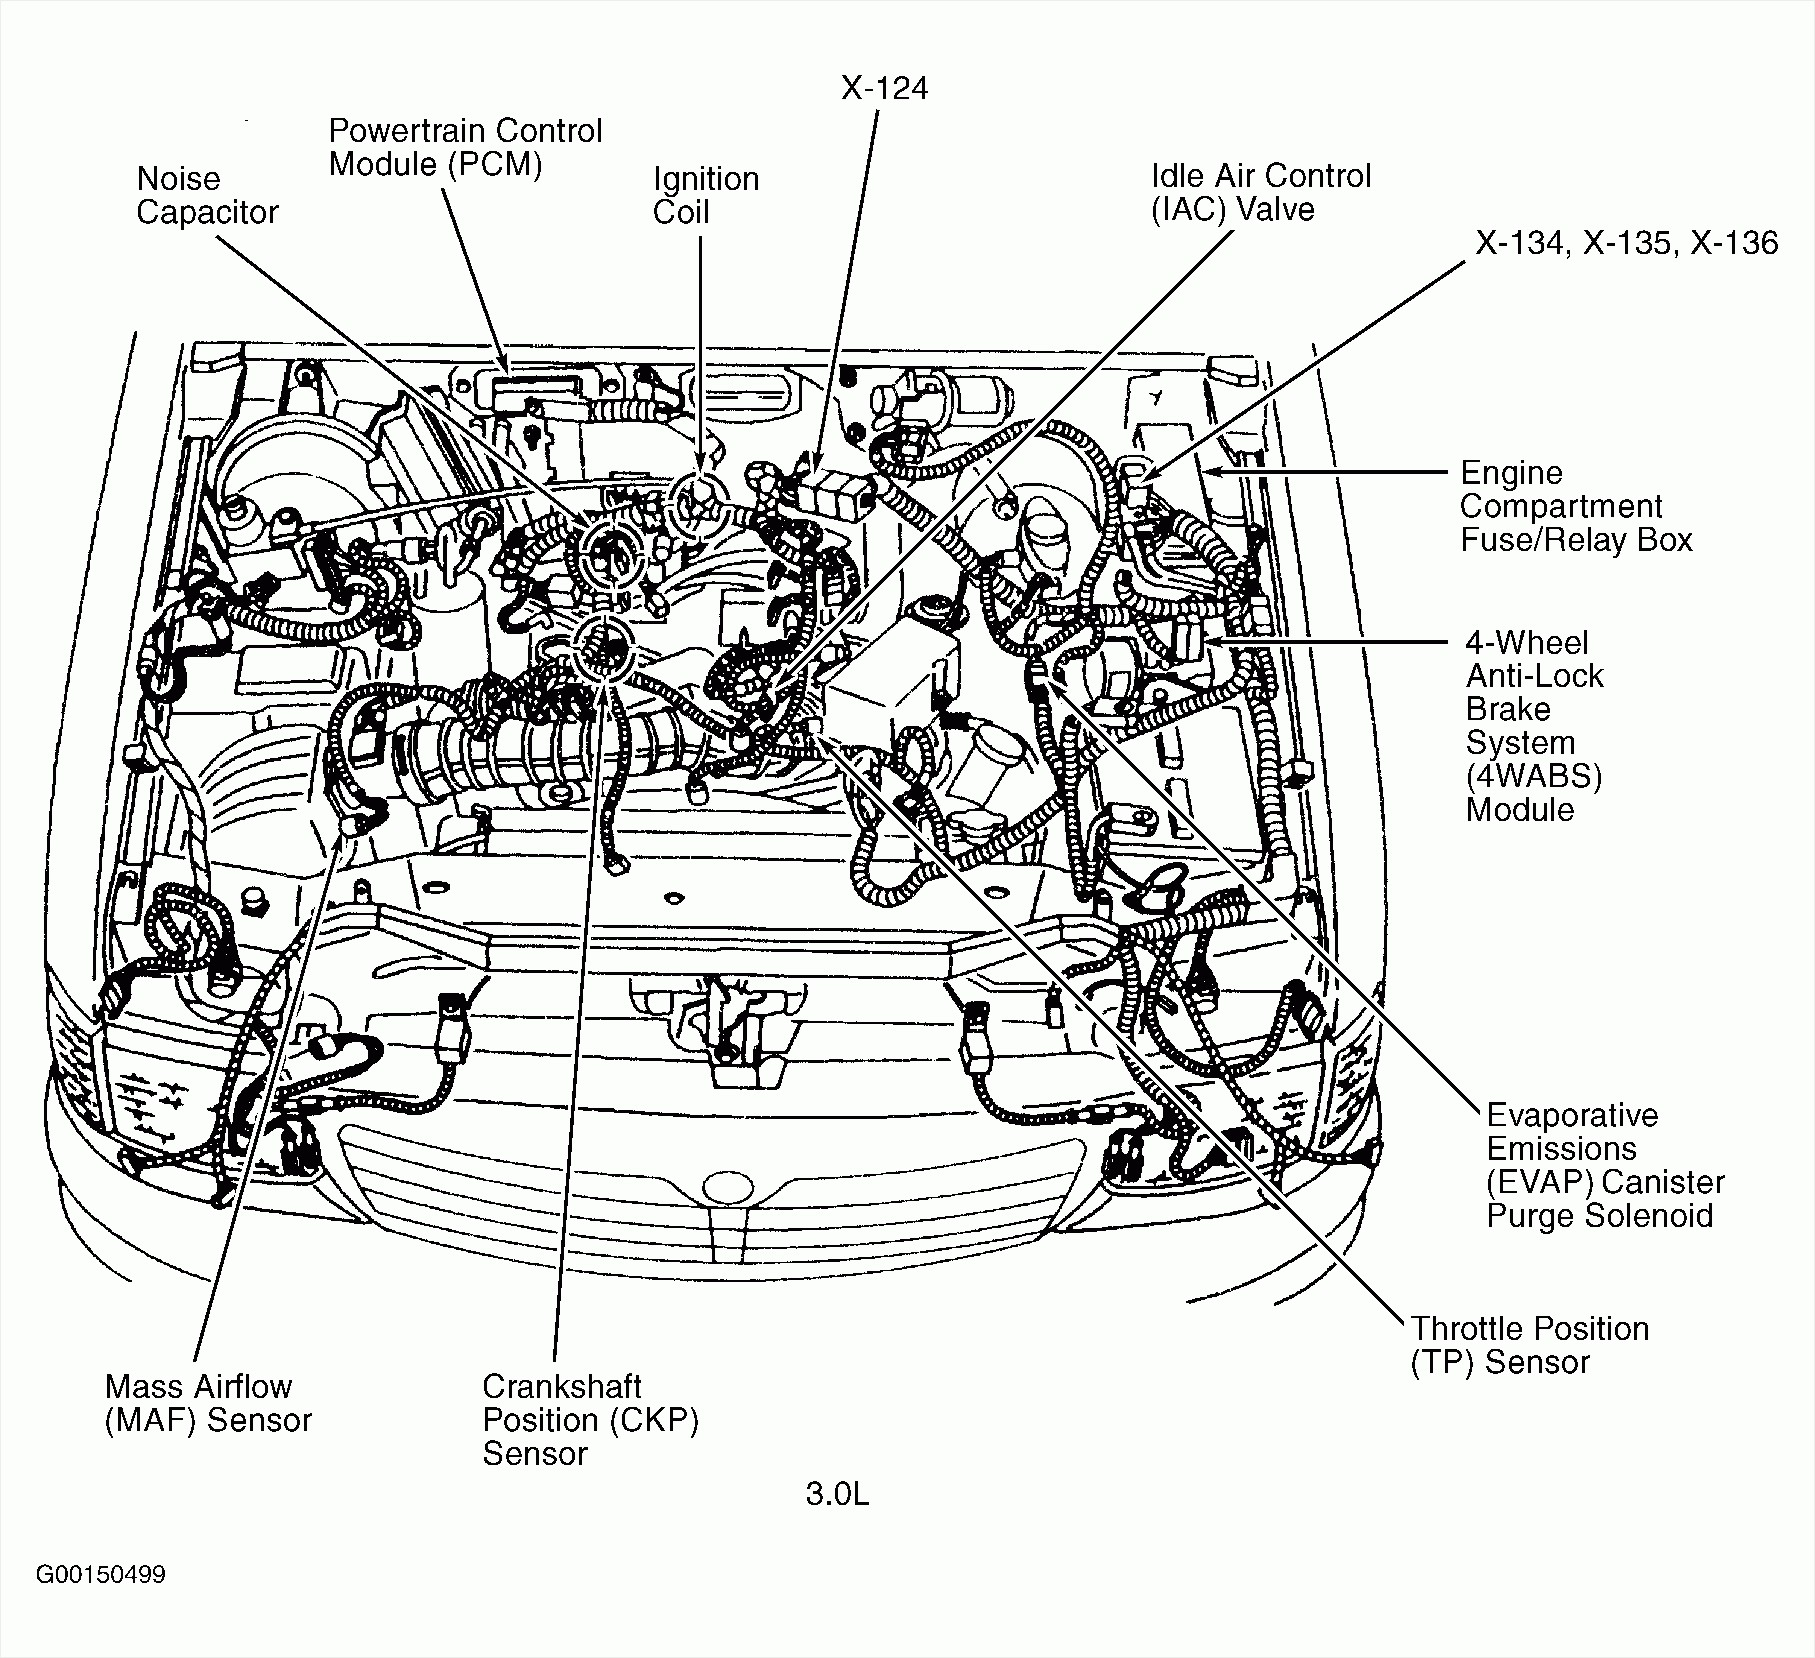 hight resolution of gm 4 3 engine diagram wiring library rh 50 einheitmitte de chevy 6 0 engine 2004 chevy 6 0 engine diagram photos